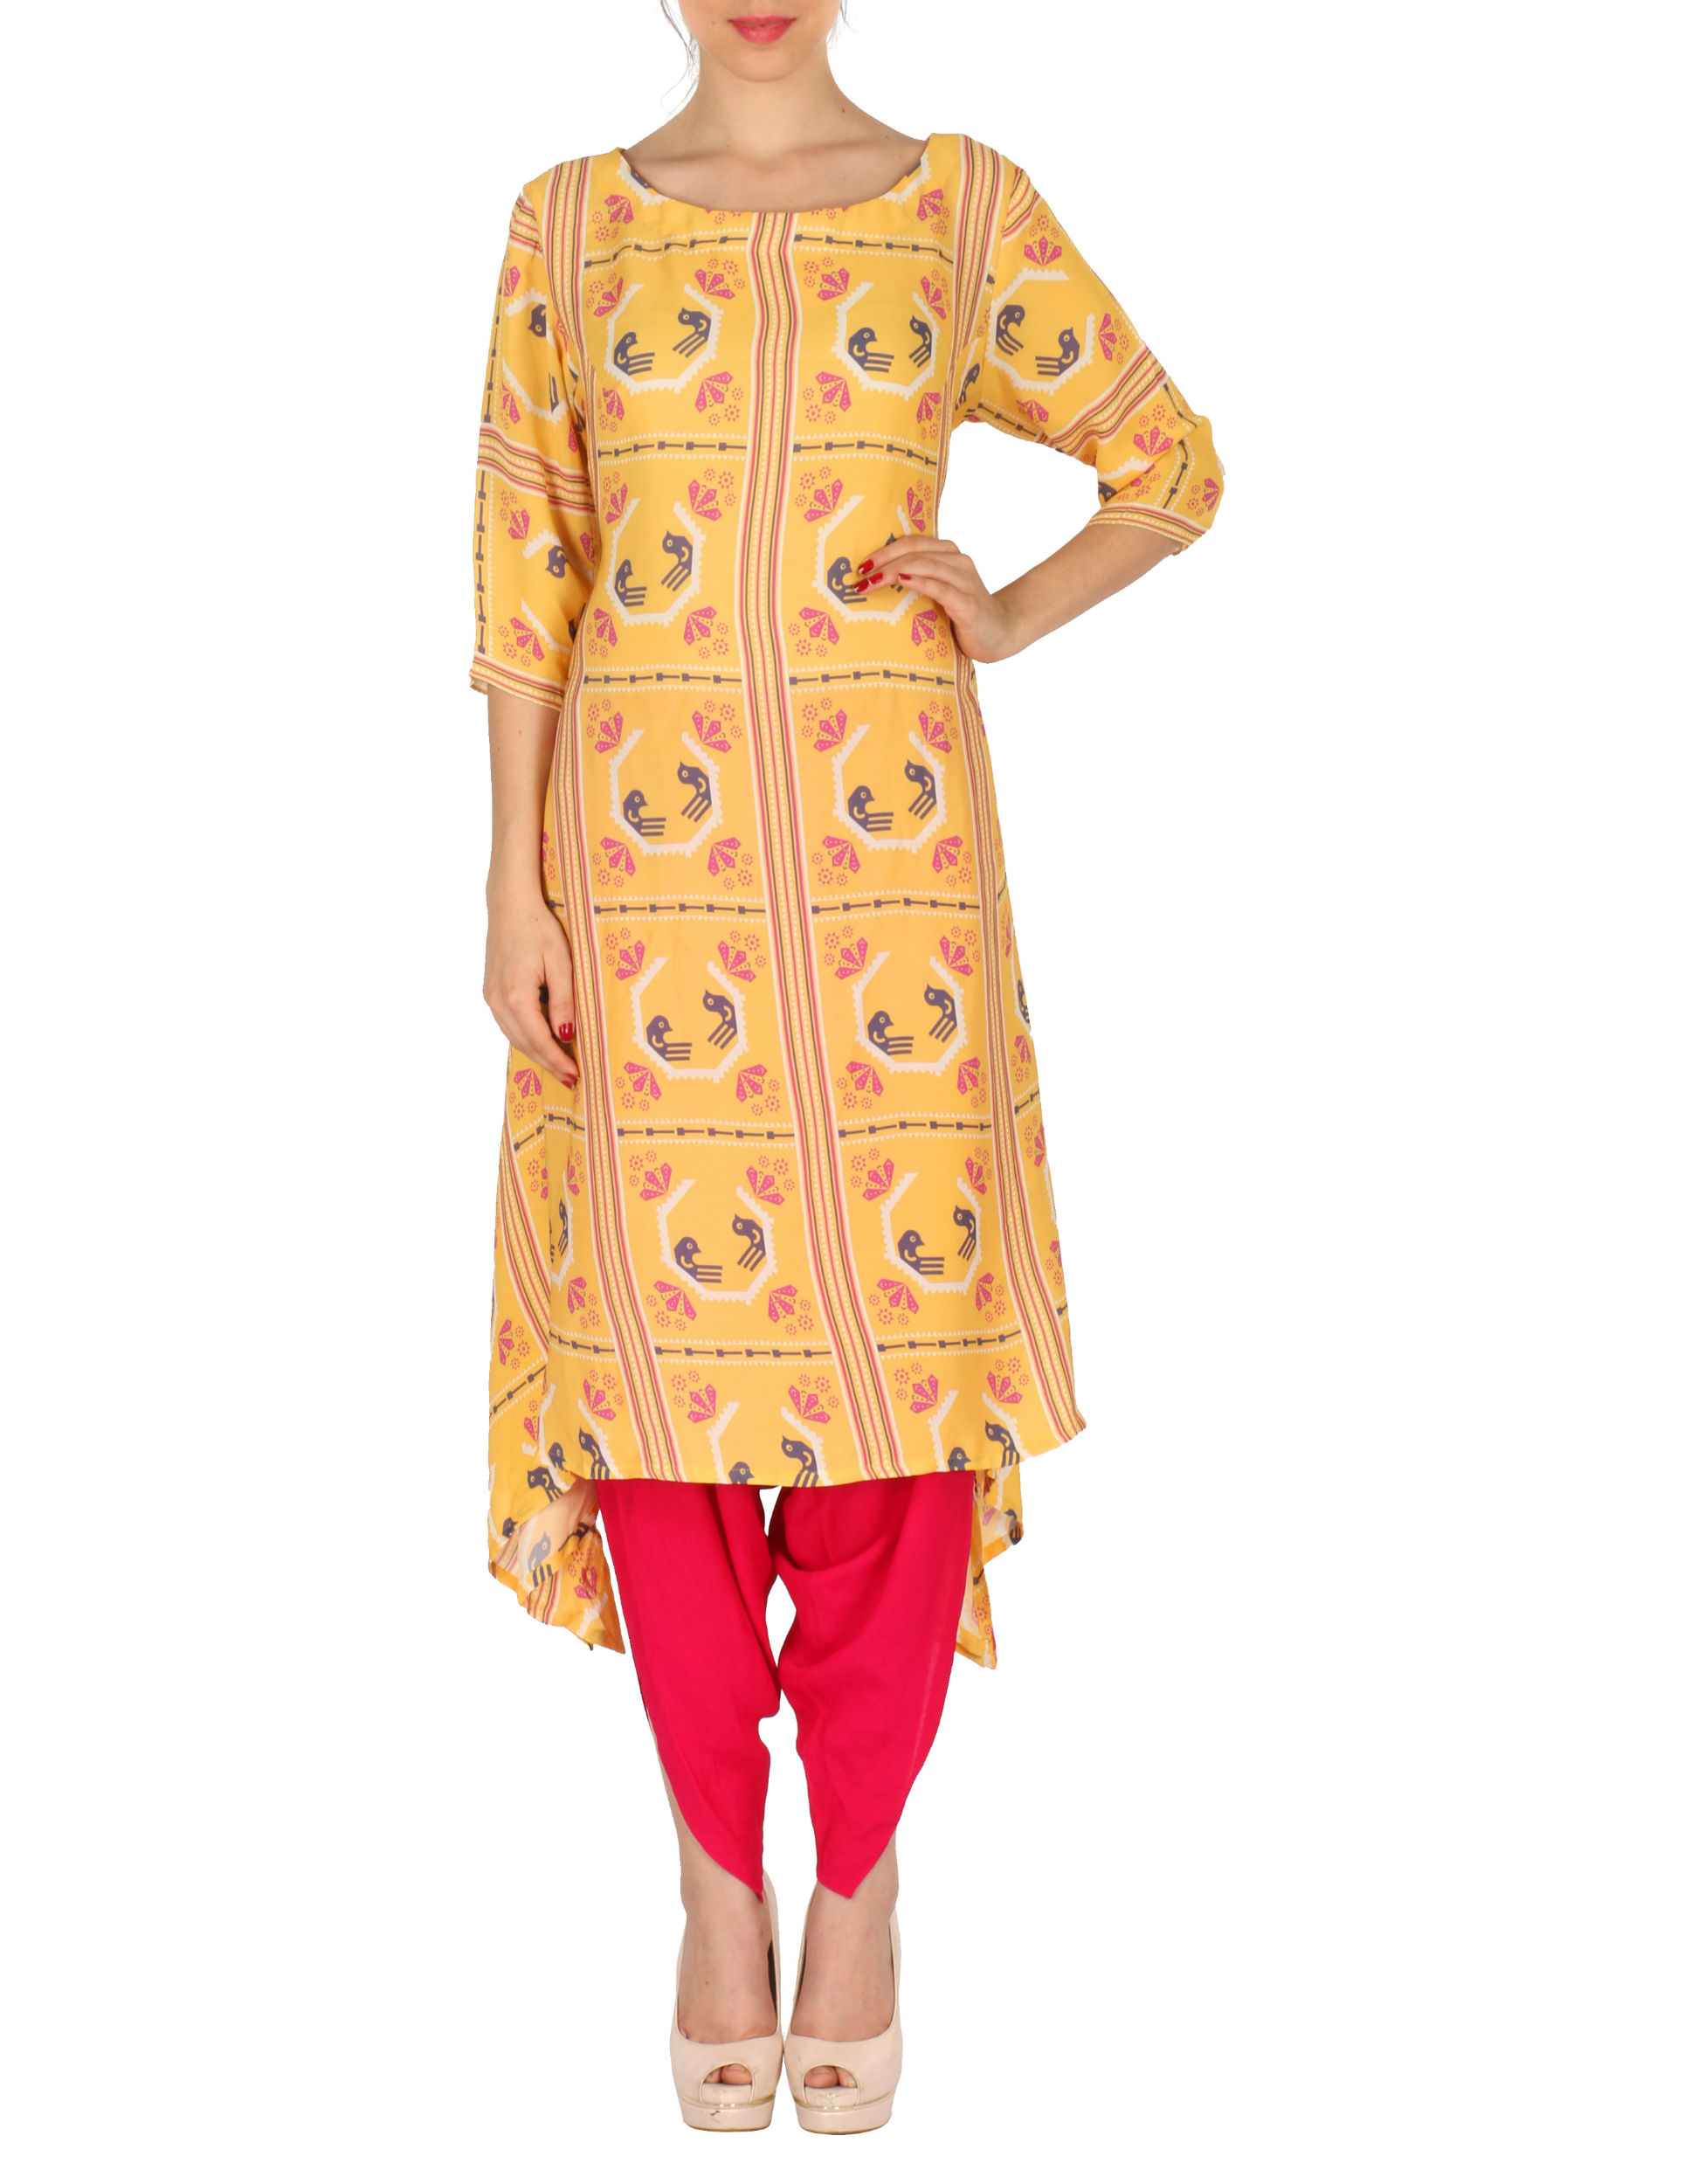 Kurta with patiala in yellow and red